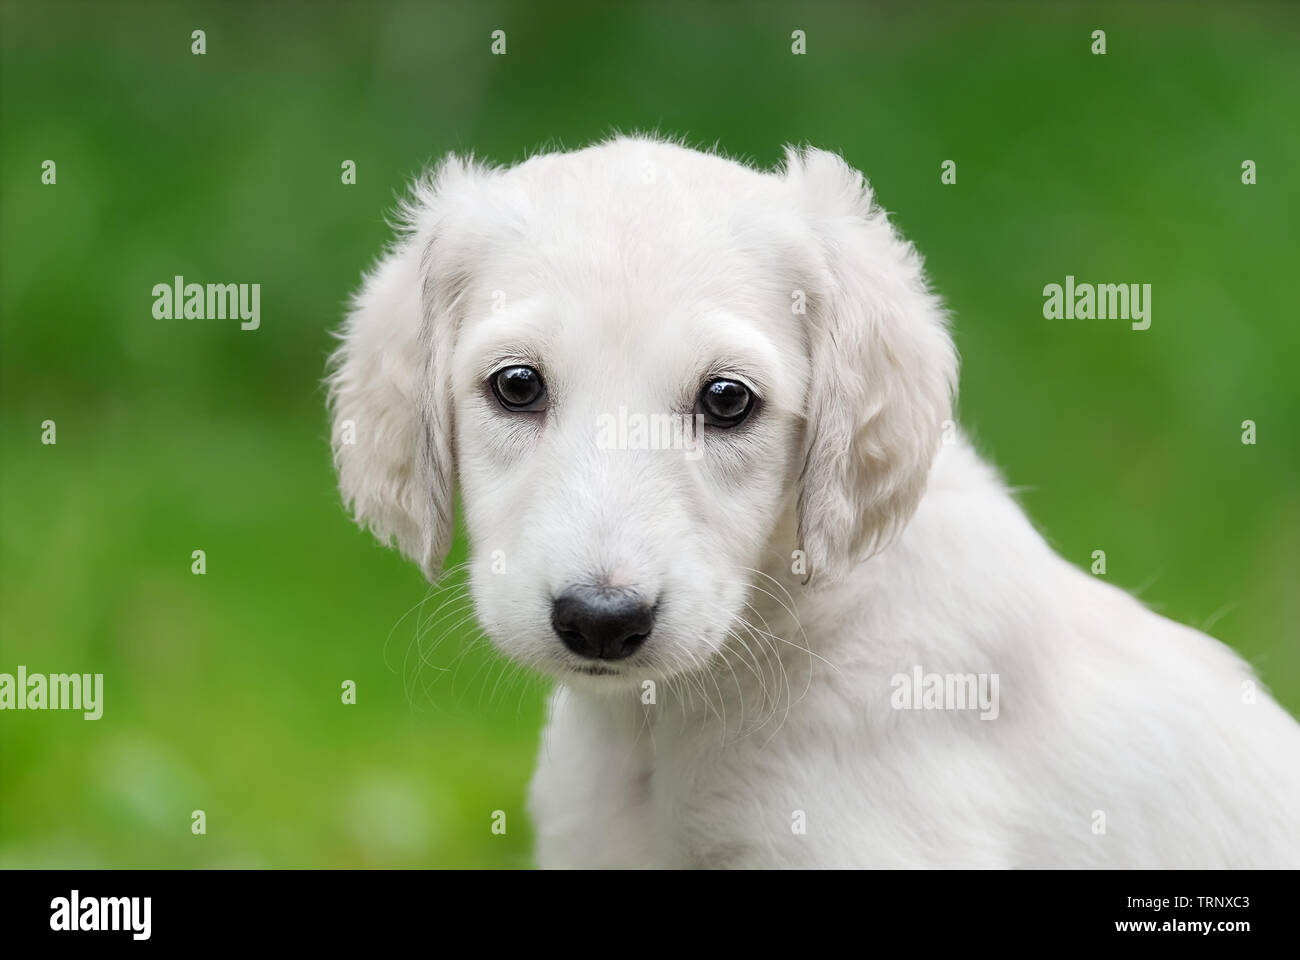 Young Saluki Persian Greyhound Puppy With A Light Colored Coat Portrait Of A Cute Baby Dog Sitting In A Green Meadow Looking Curiously With Wide E Stock Photo Alamy